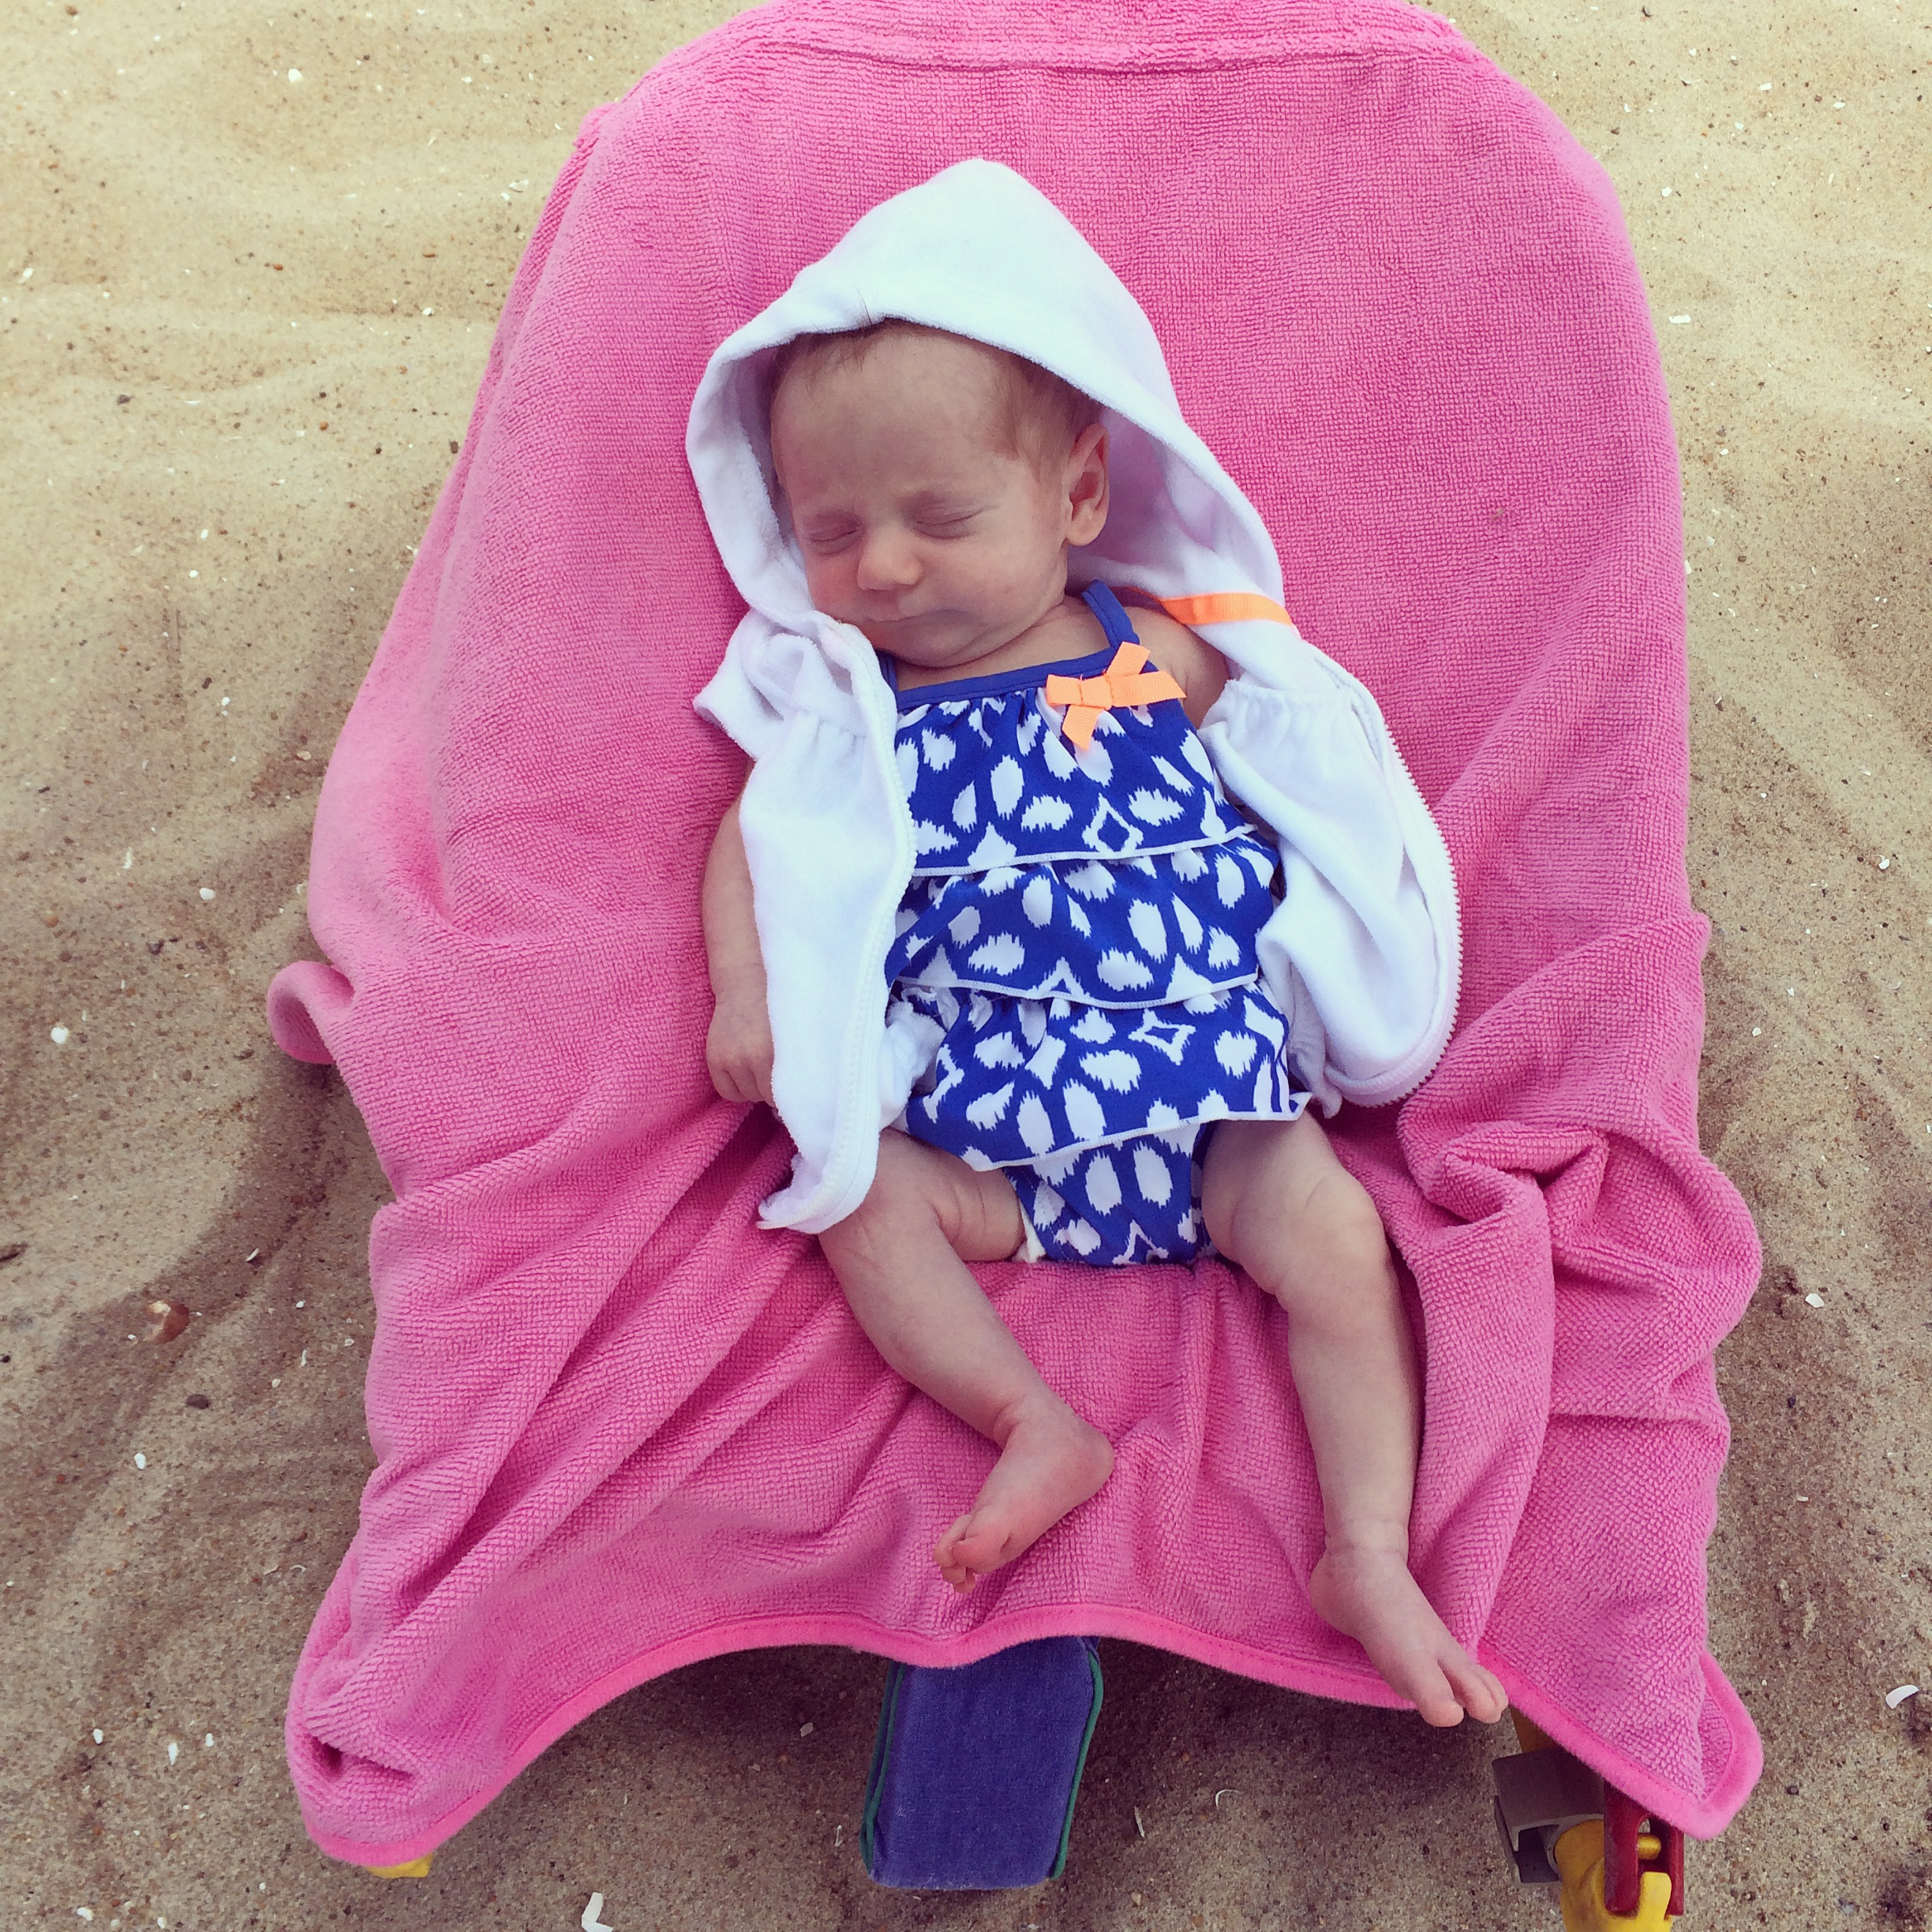 chillin' in her beach chair